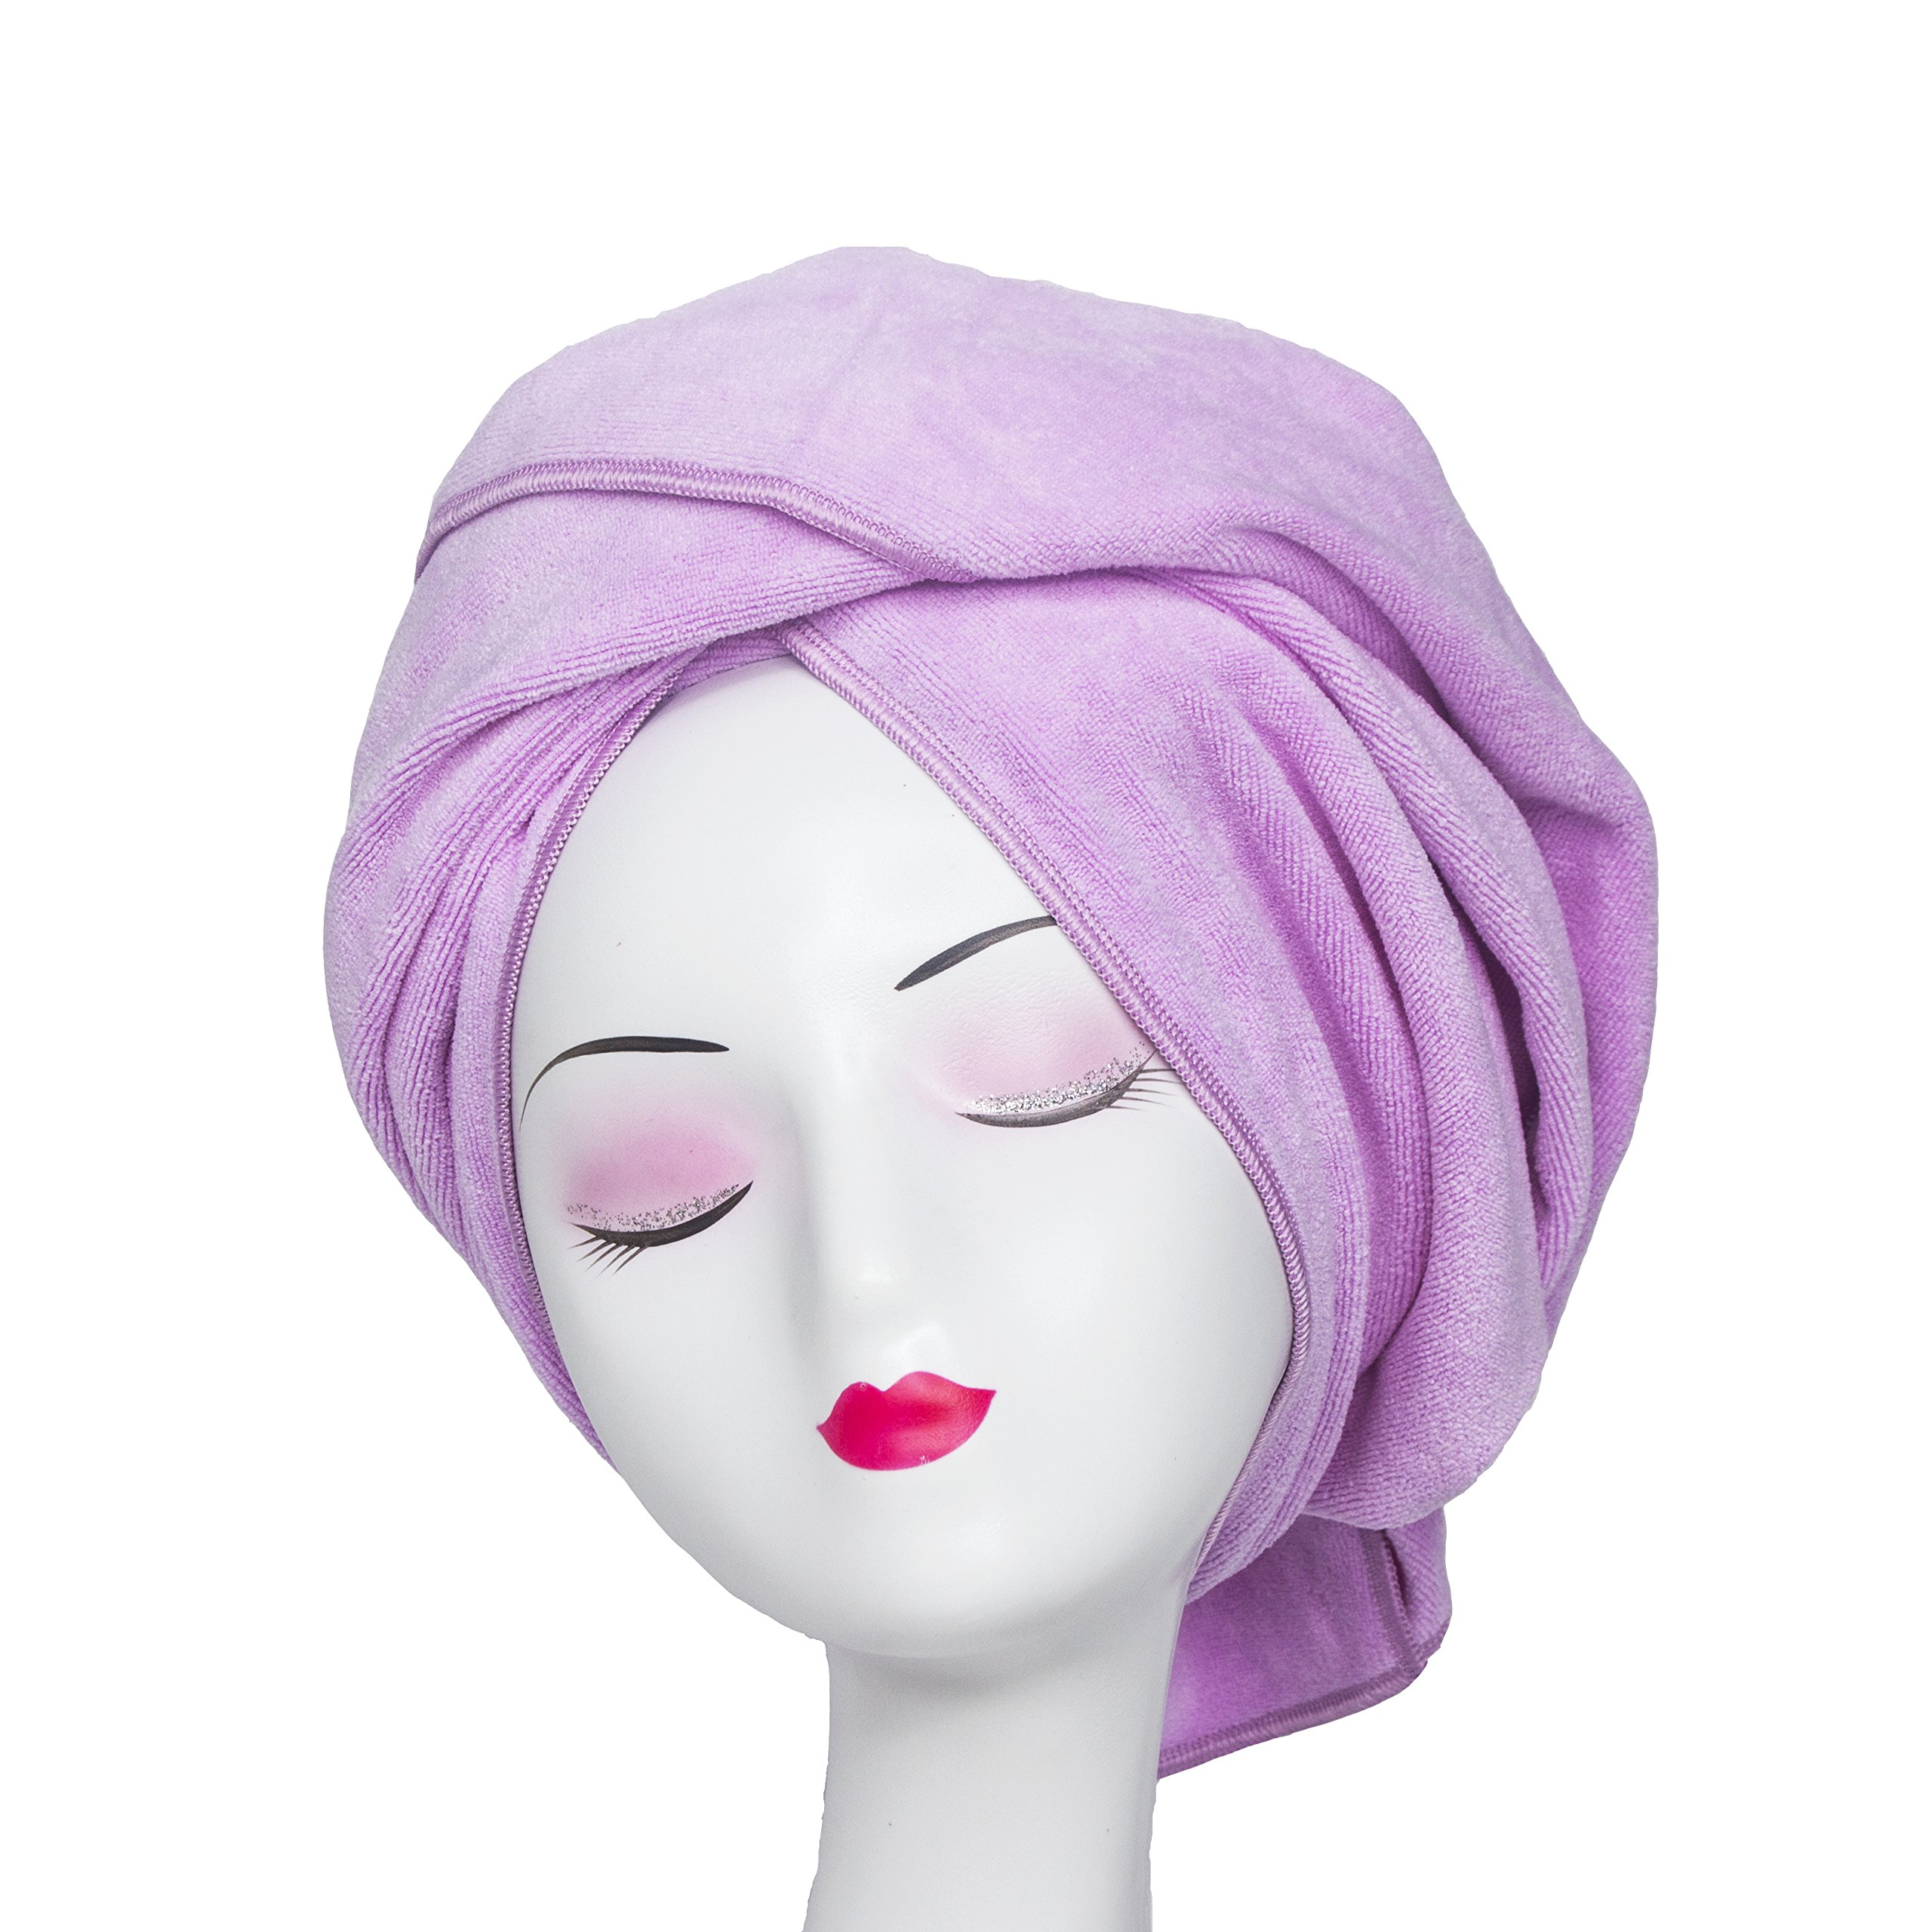 Microfiber Hair Towel WuJi Anti Frizz Hair Wrap Super Absorbent Curly Hair Drying Towel 23.6''x47'' Large Multifunction Towel for Bath Spa Makeup, Light Purple